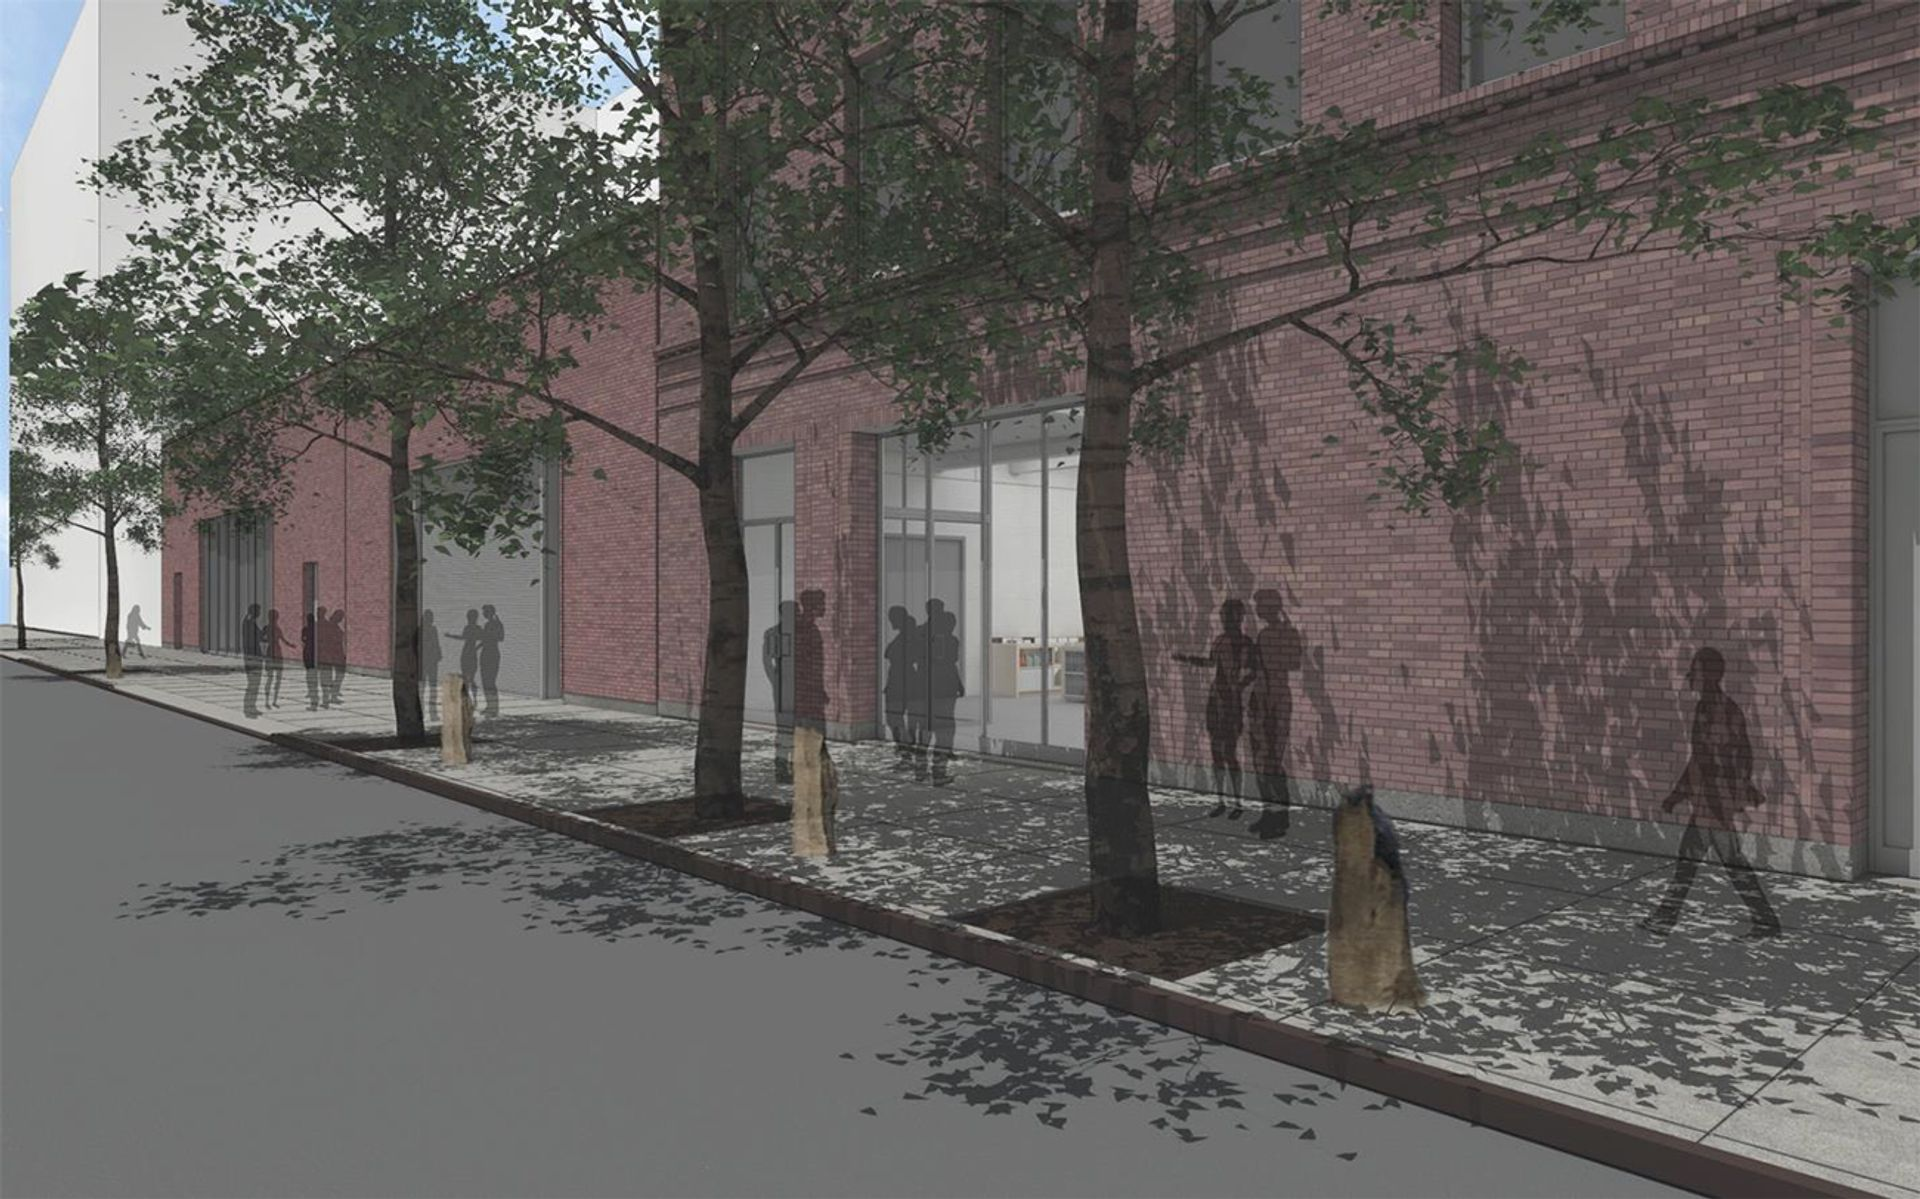 The façade for the revamped Dia:Chelsea, due to reopen in autumn 2020 Courtesy of Architecture Research Office/ Dia Art Foundation